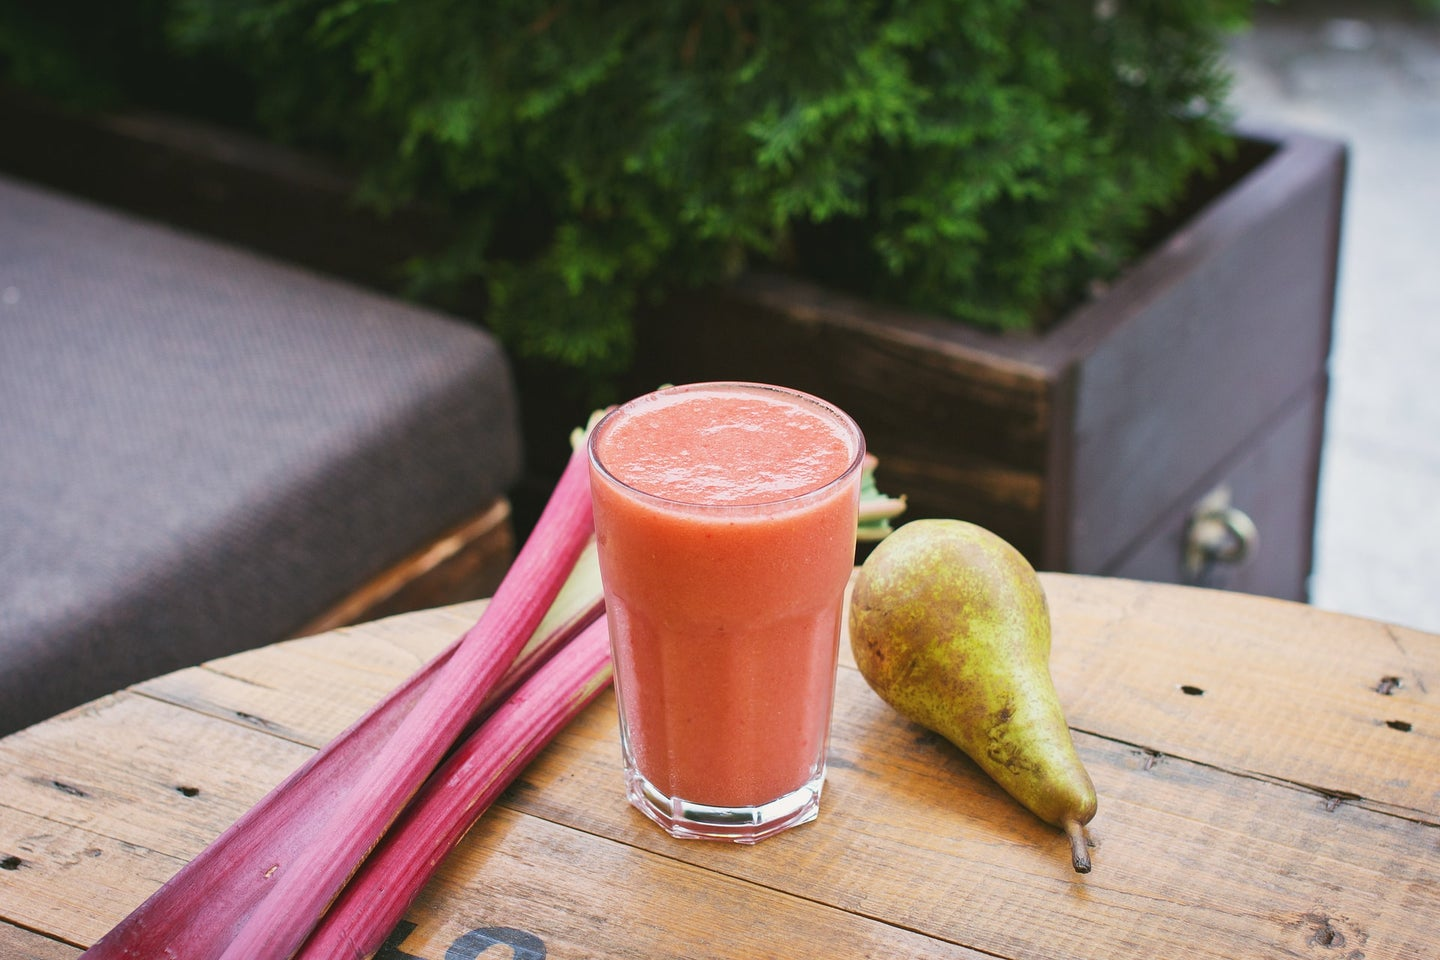 fruits and vegetables on a table next to a glass of colorful liquid for a juice cleanse